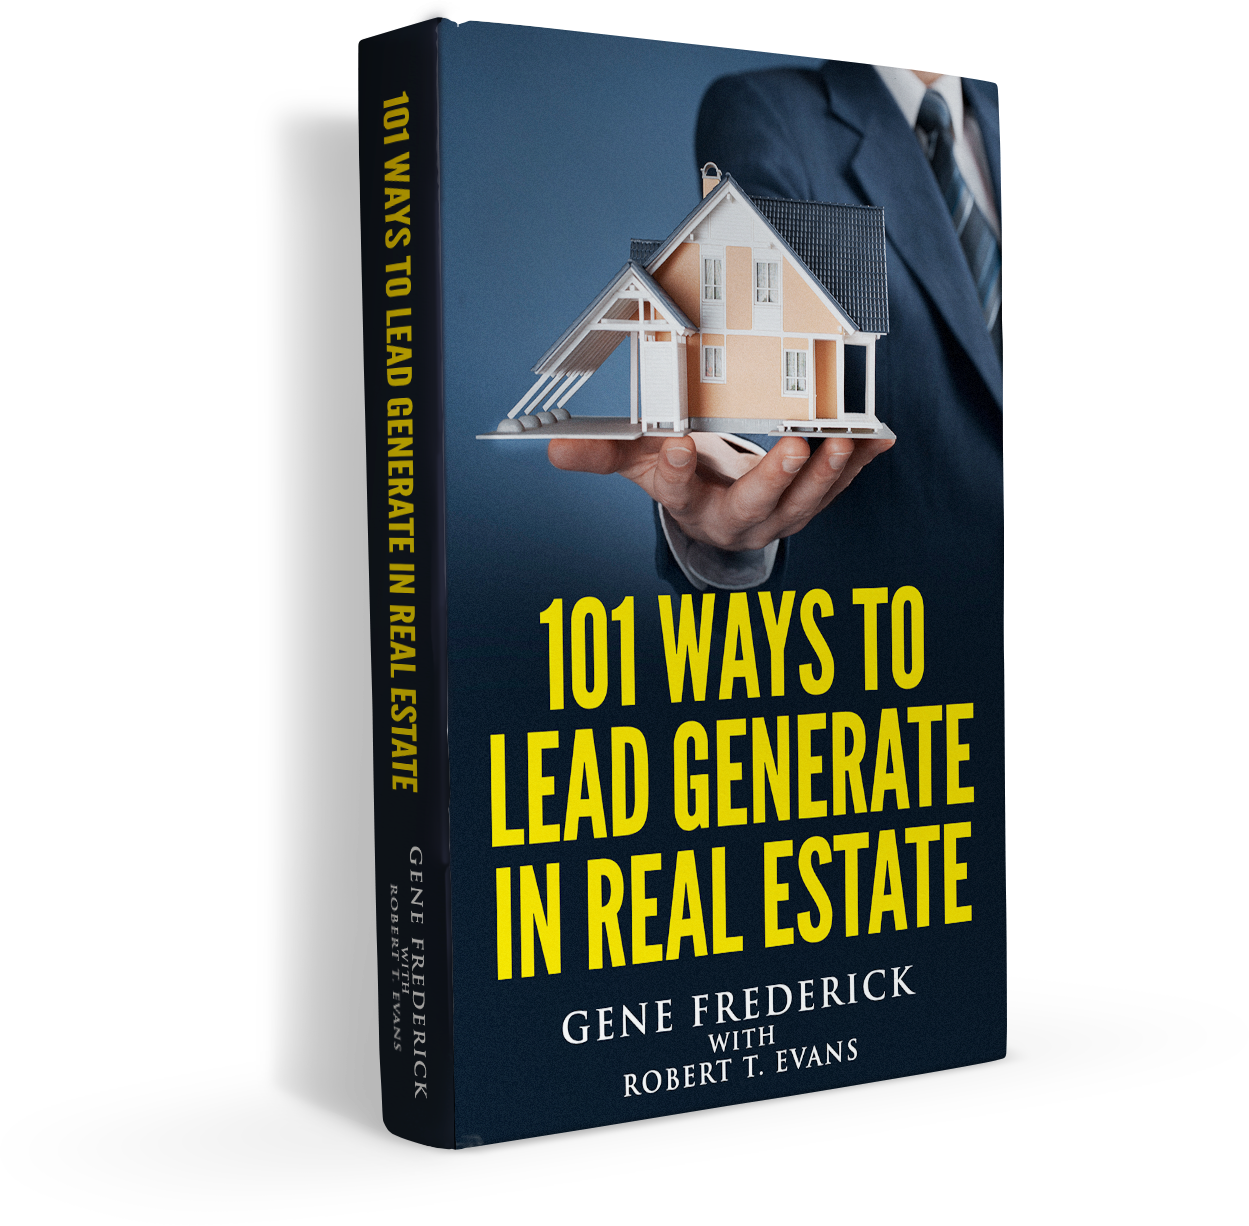 101 Ways to Lead Generate in Real Estate